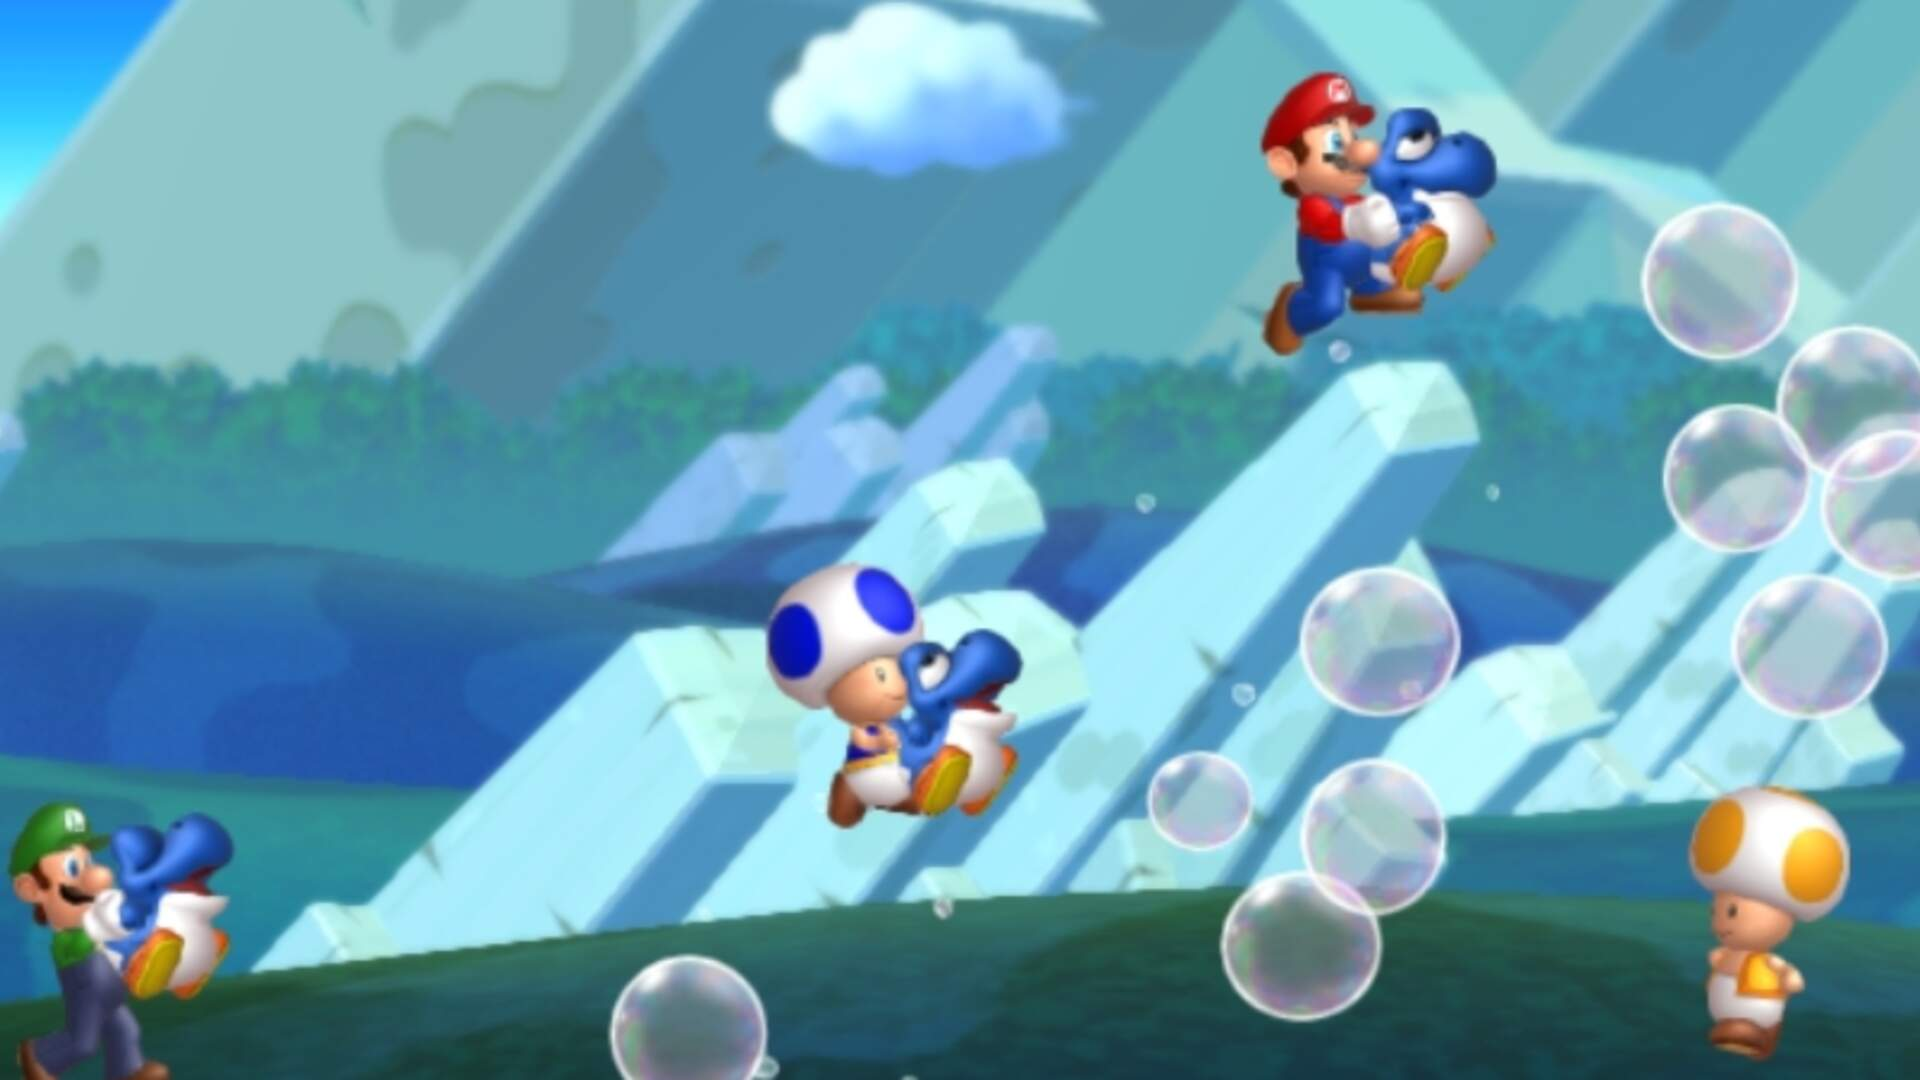 Report: New Super Mario Bros. U Coming to Switch